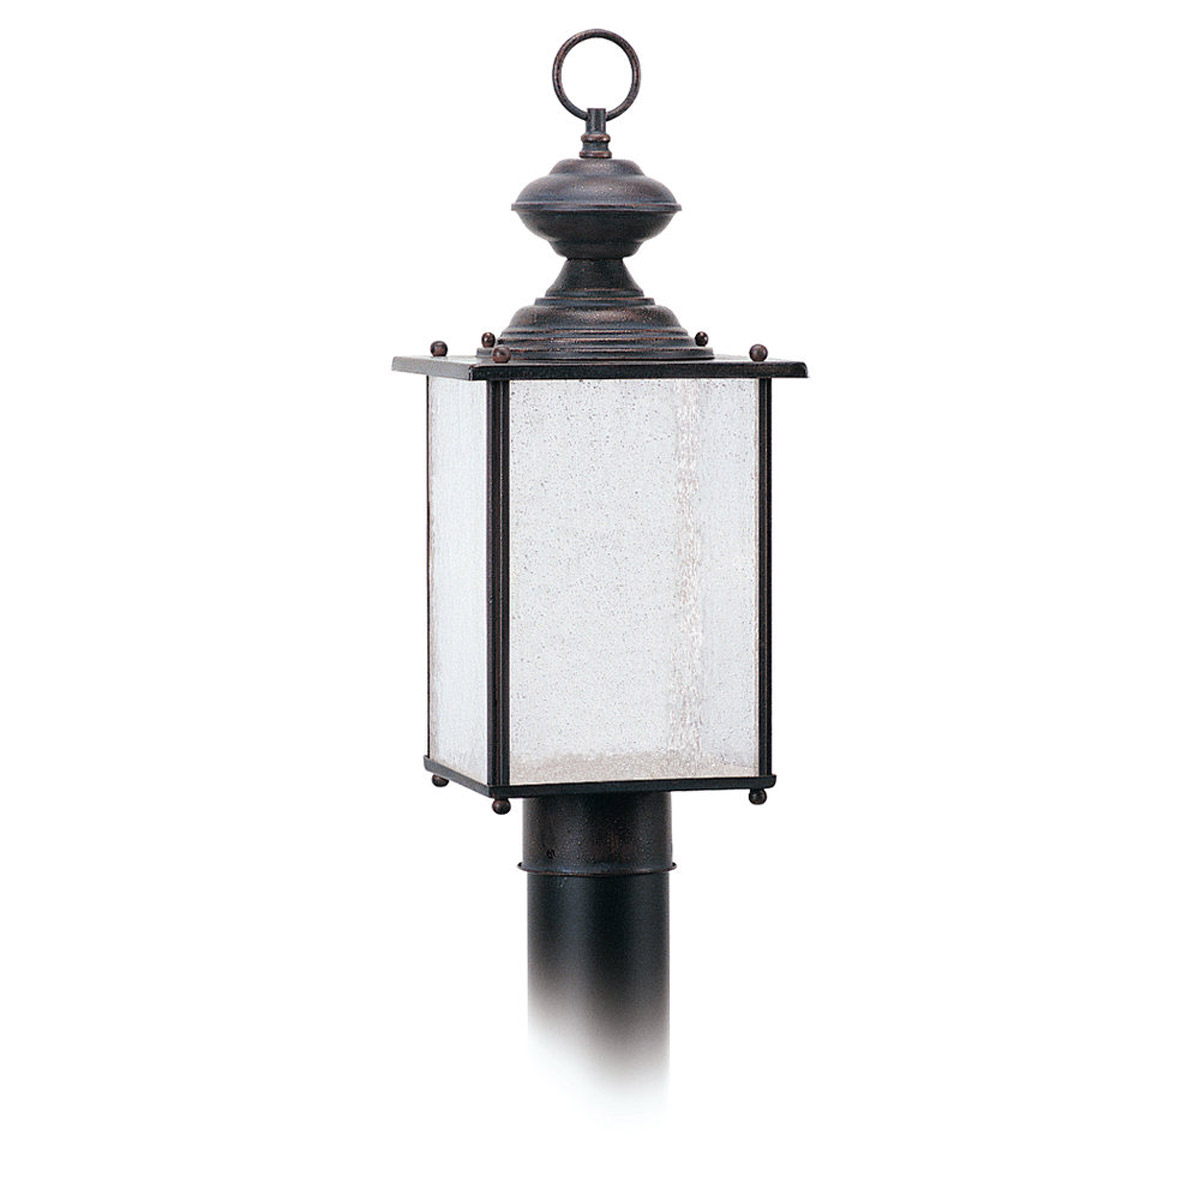 Sea Gull Lighting Jamestowne 1 Light Outdoor Wall Lantern in Textured Rust Patina 89386PBLE-08